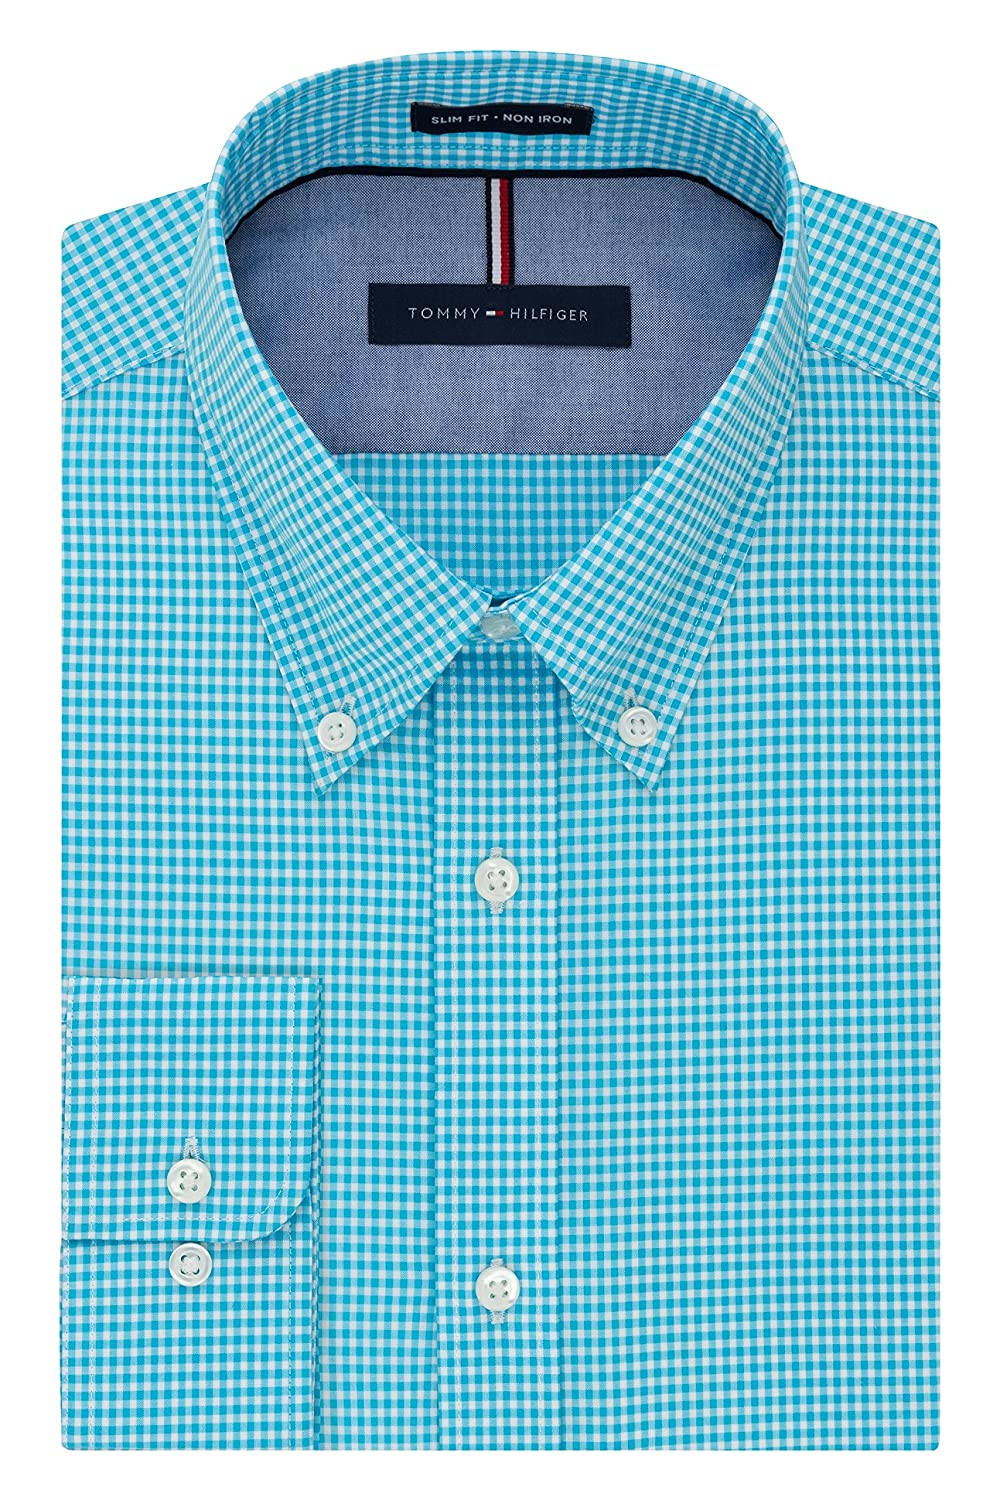 d65b17cb Tommy Hilfiger Men's Non Iron Slim Fit Gingham Buttondown Collar Dress Shirt  at Amazon Men's Clothing store: